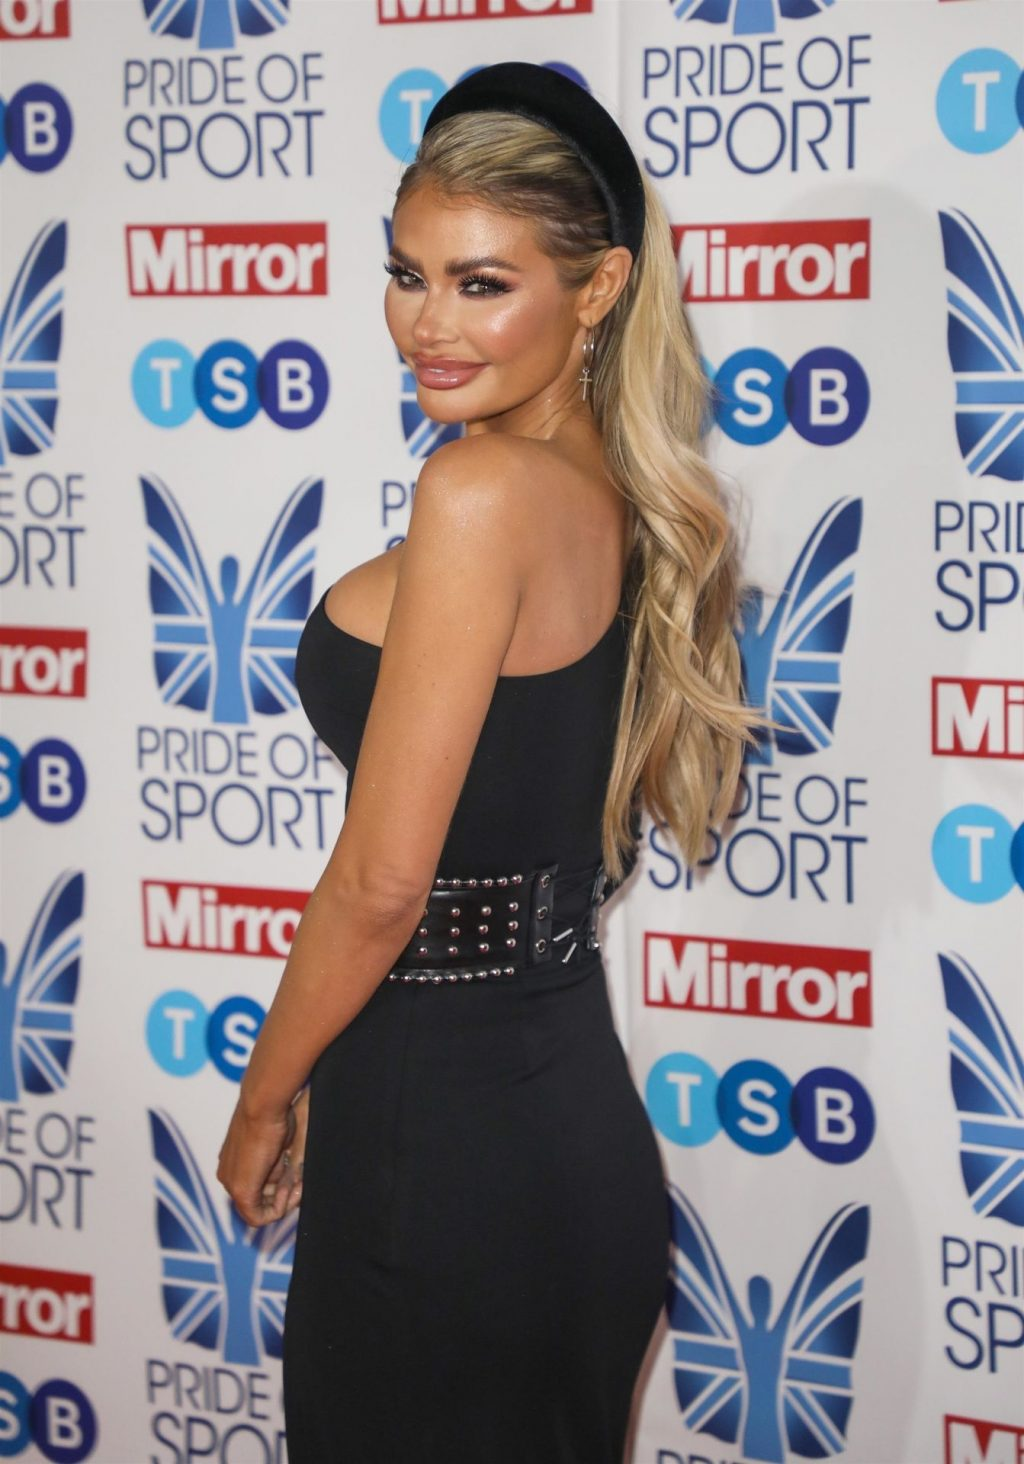 Chloe Sims Sexy (11 Photos + Video)